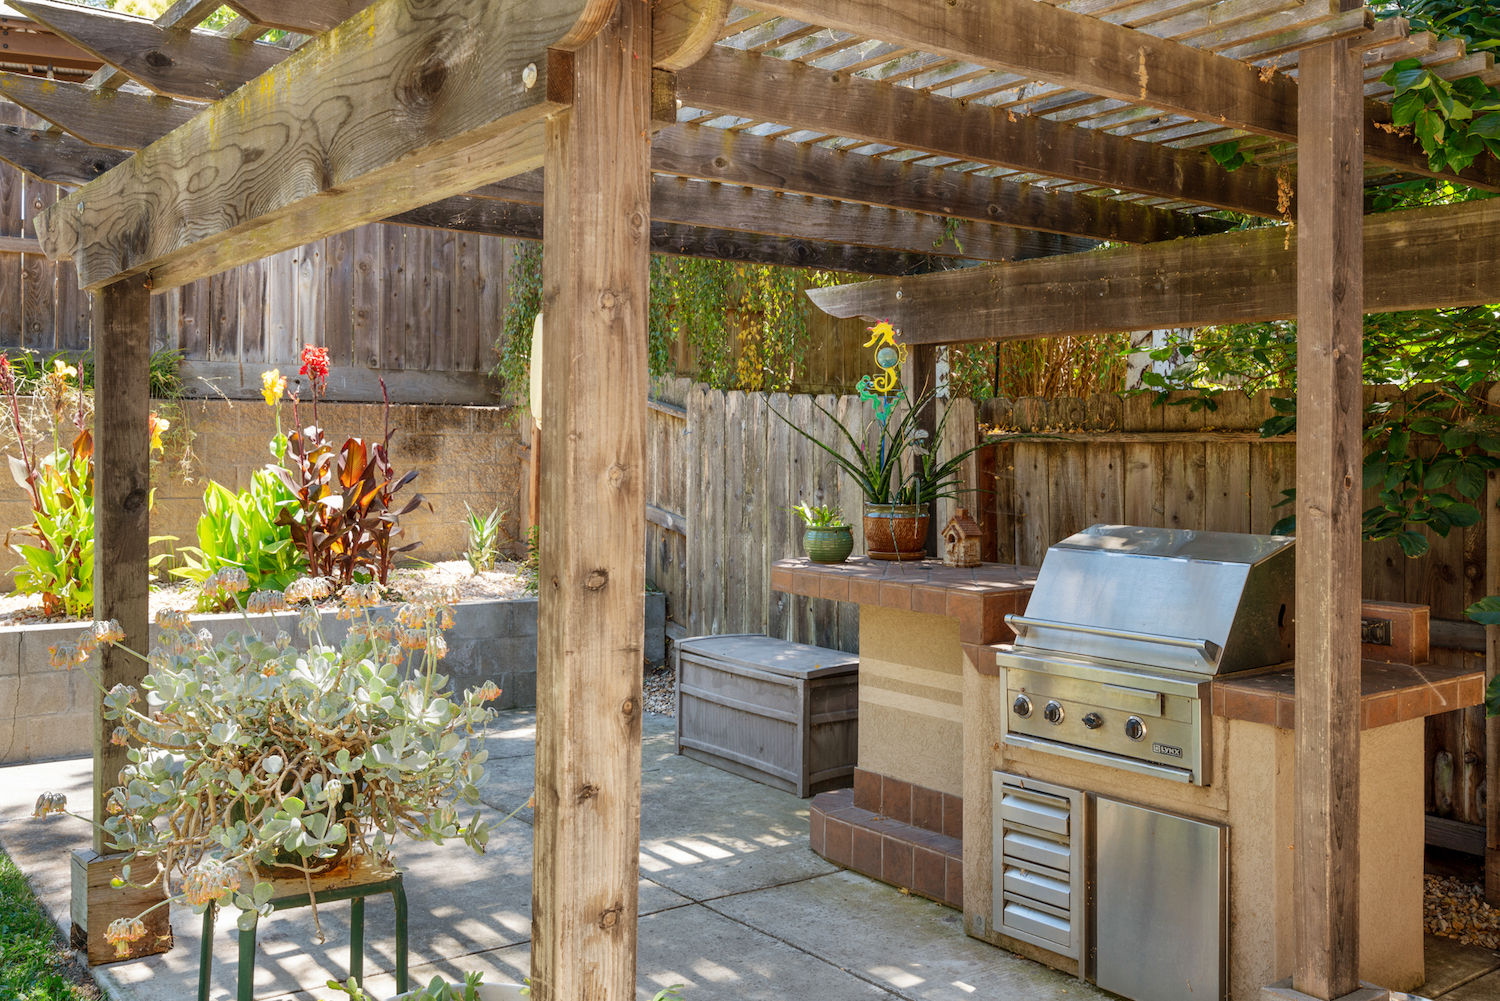 2241 glenview dr - outdoor grill